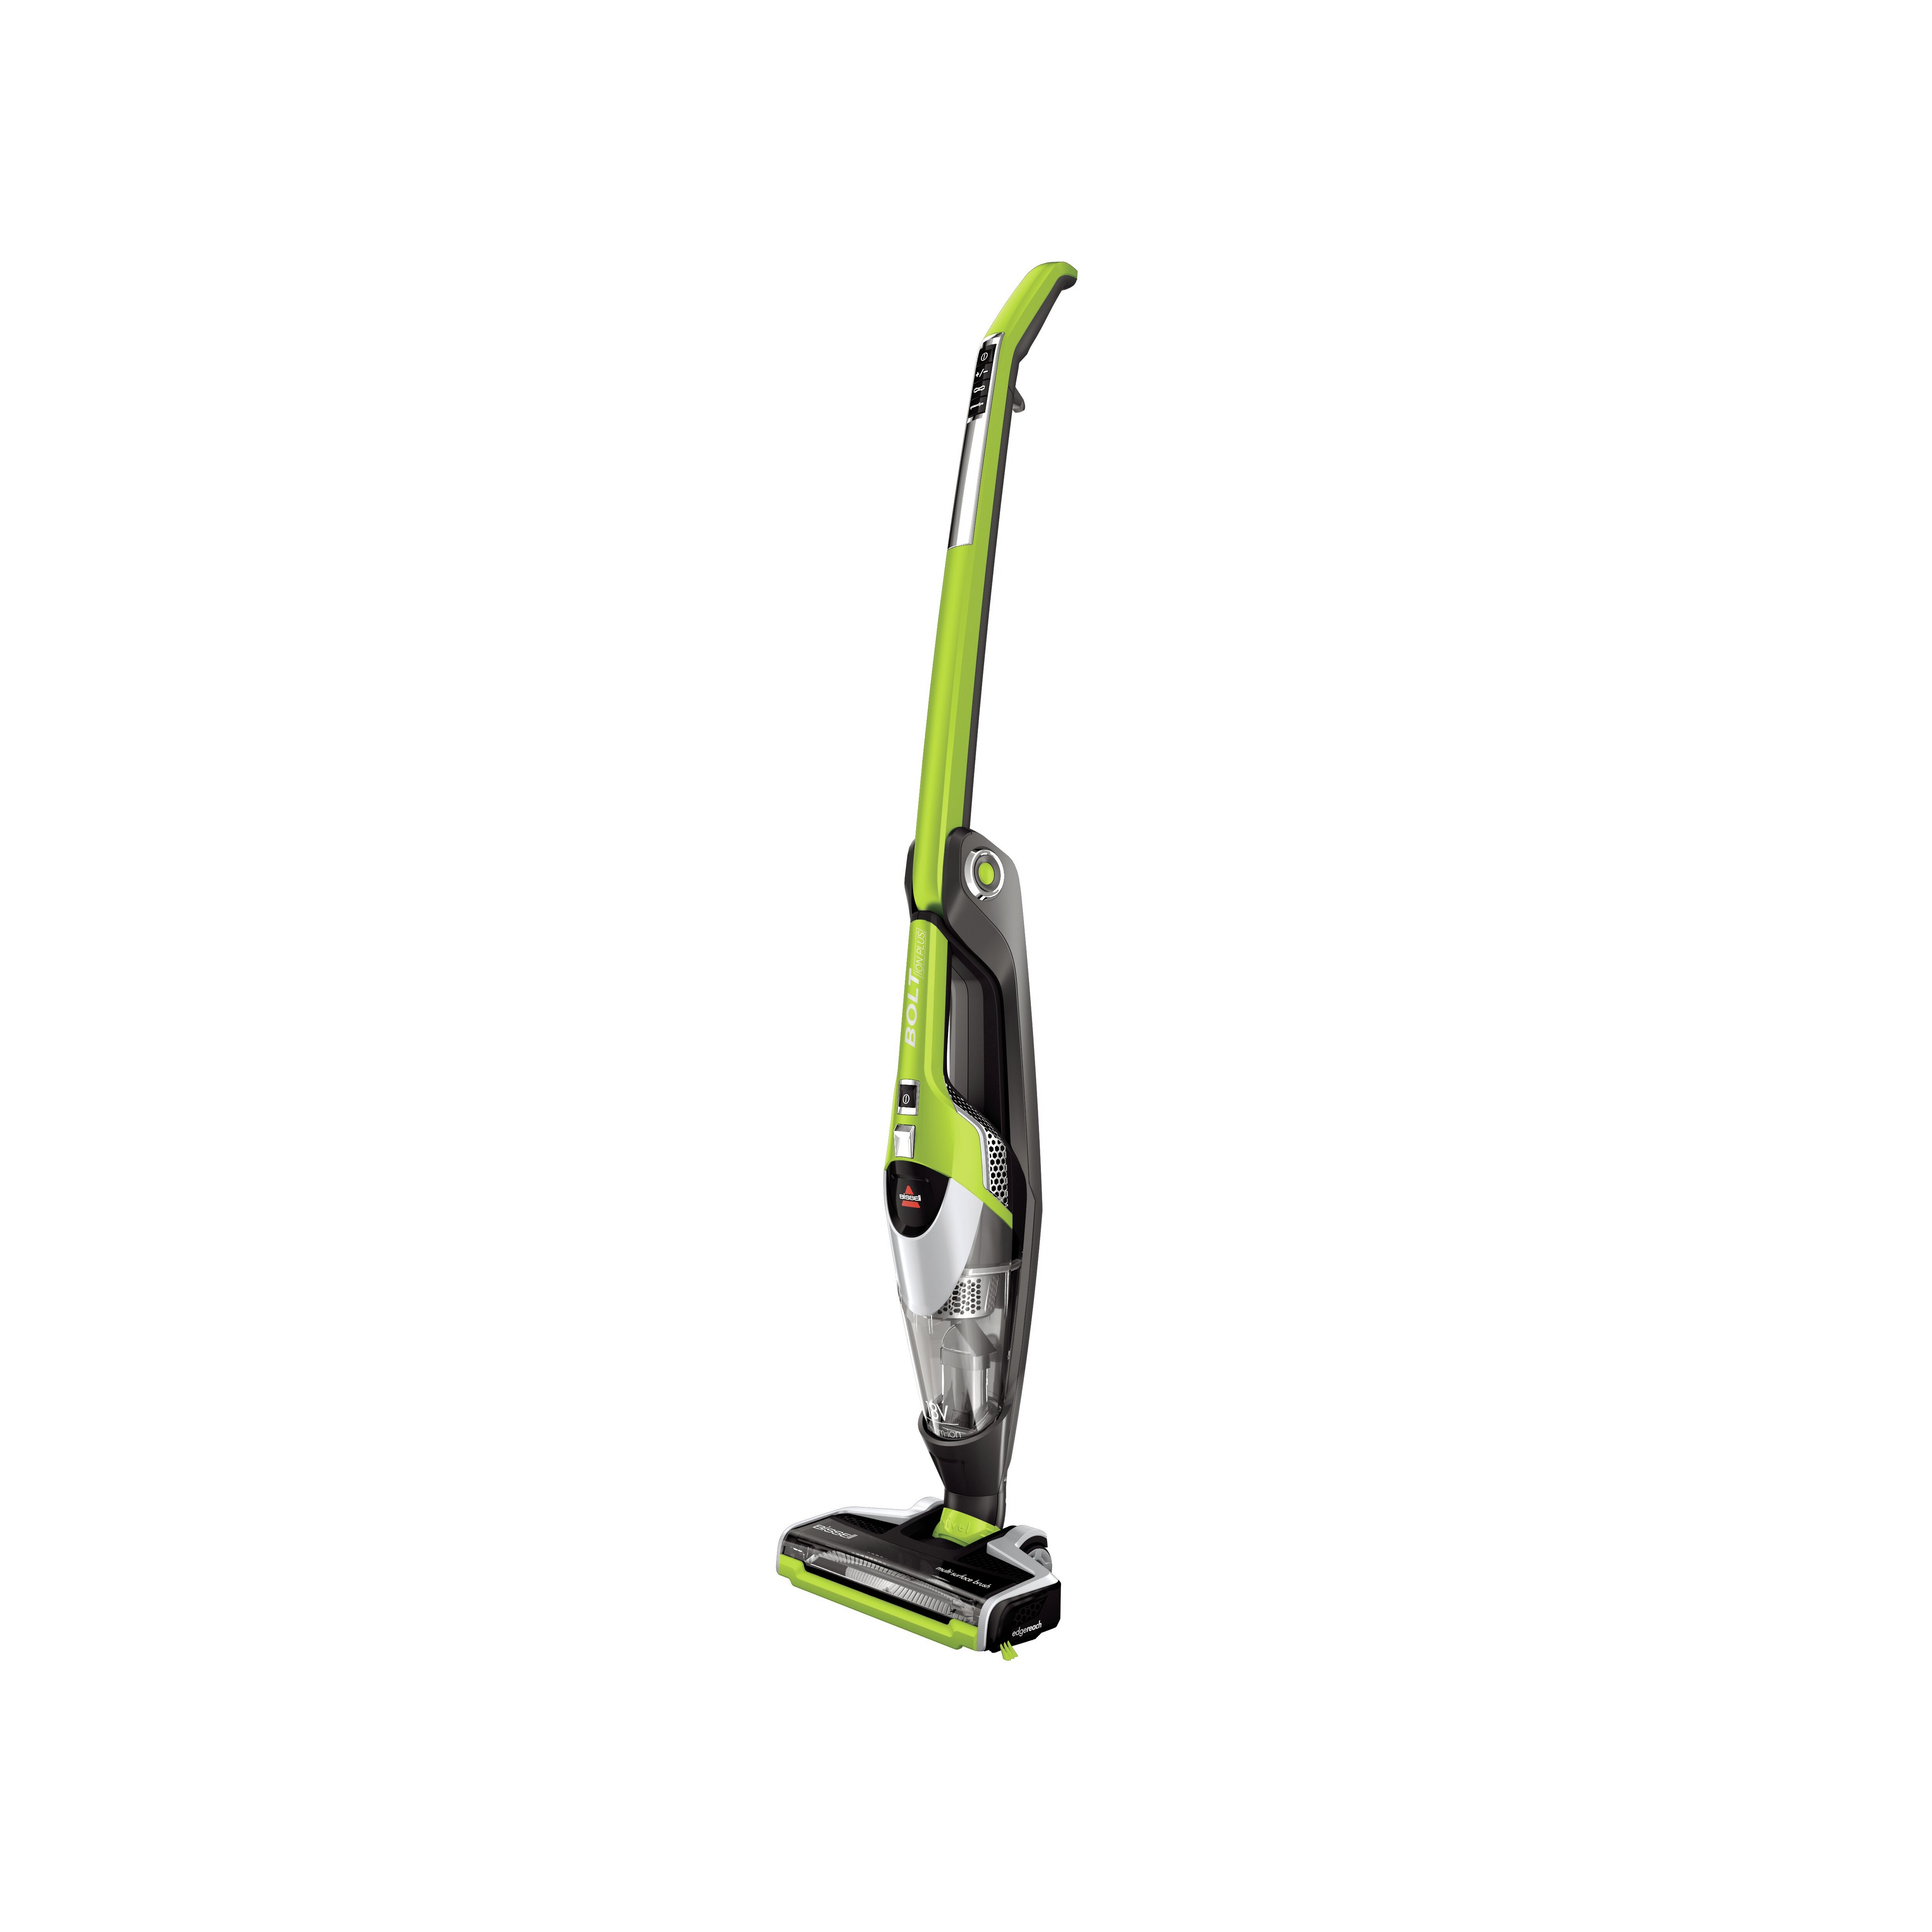 bissell bolt 2 in 1 lightweight cordless vacuum review